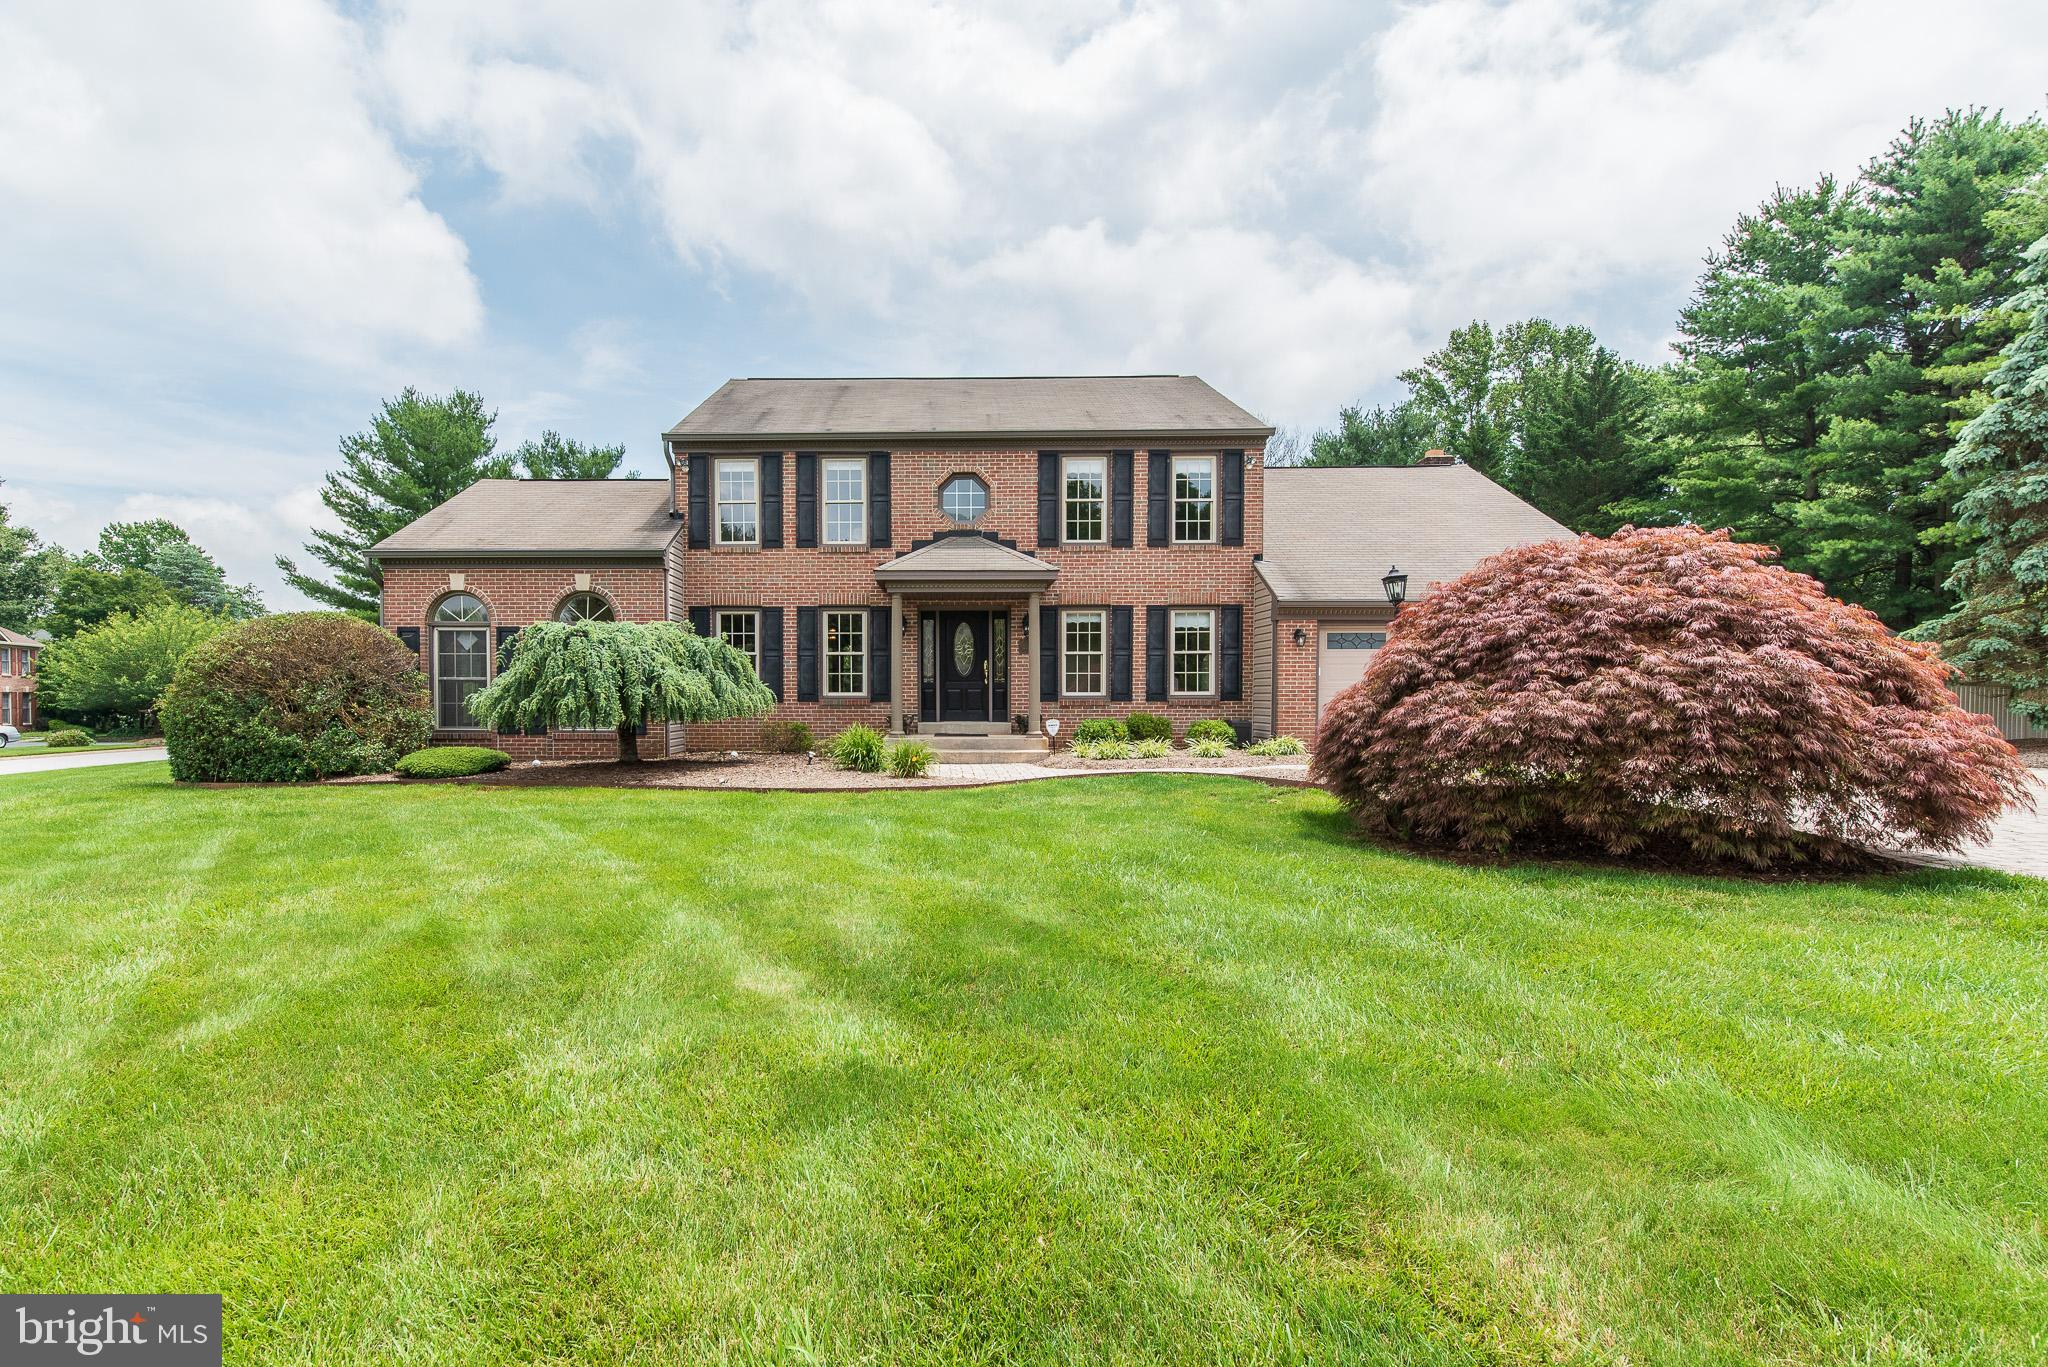 207 RHINEFORTE DRIVE, CHURCHVILLE, MD 21028